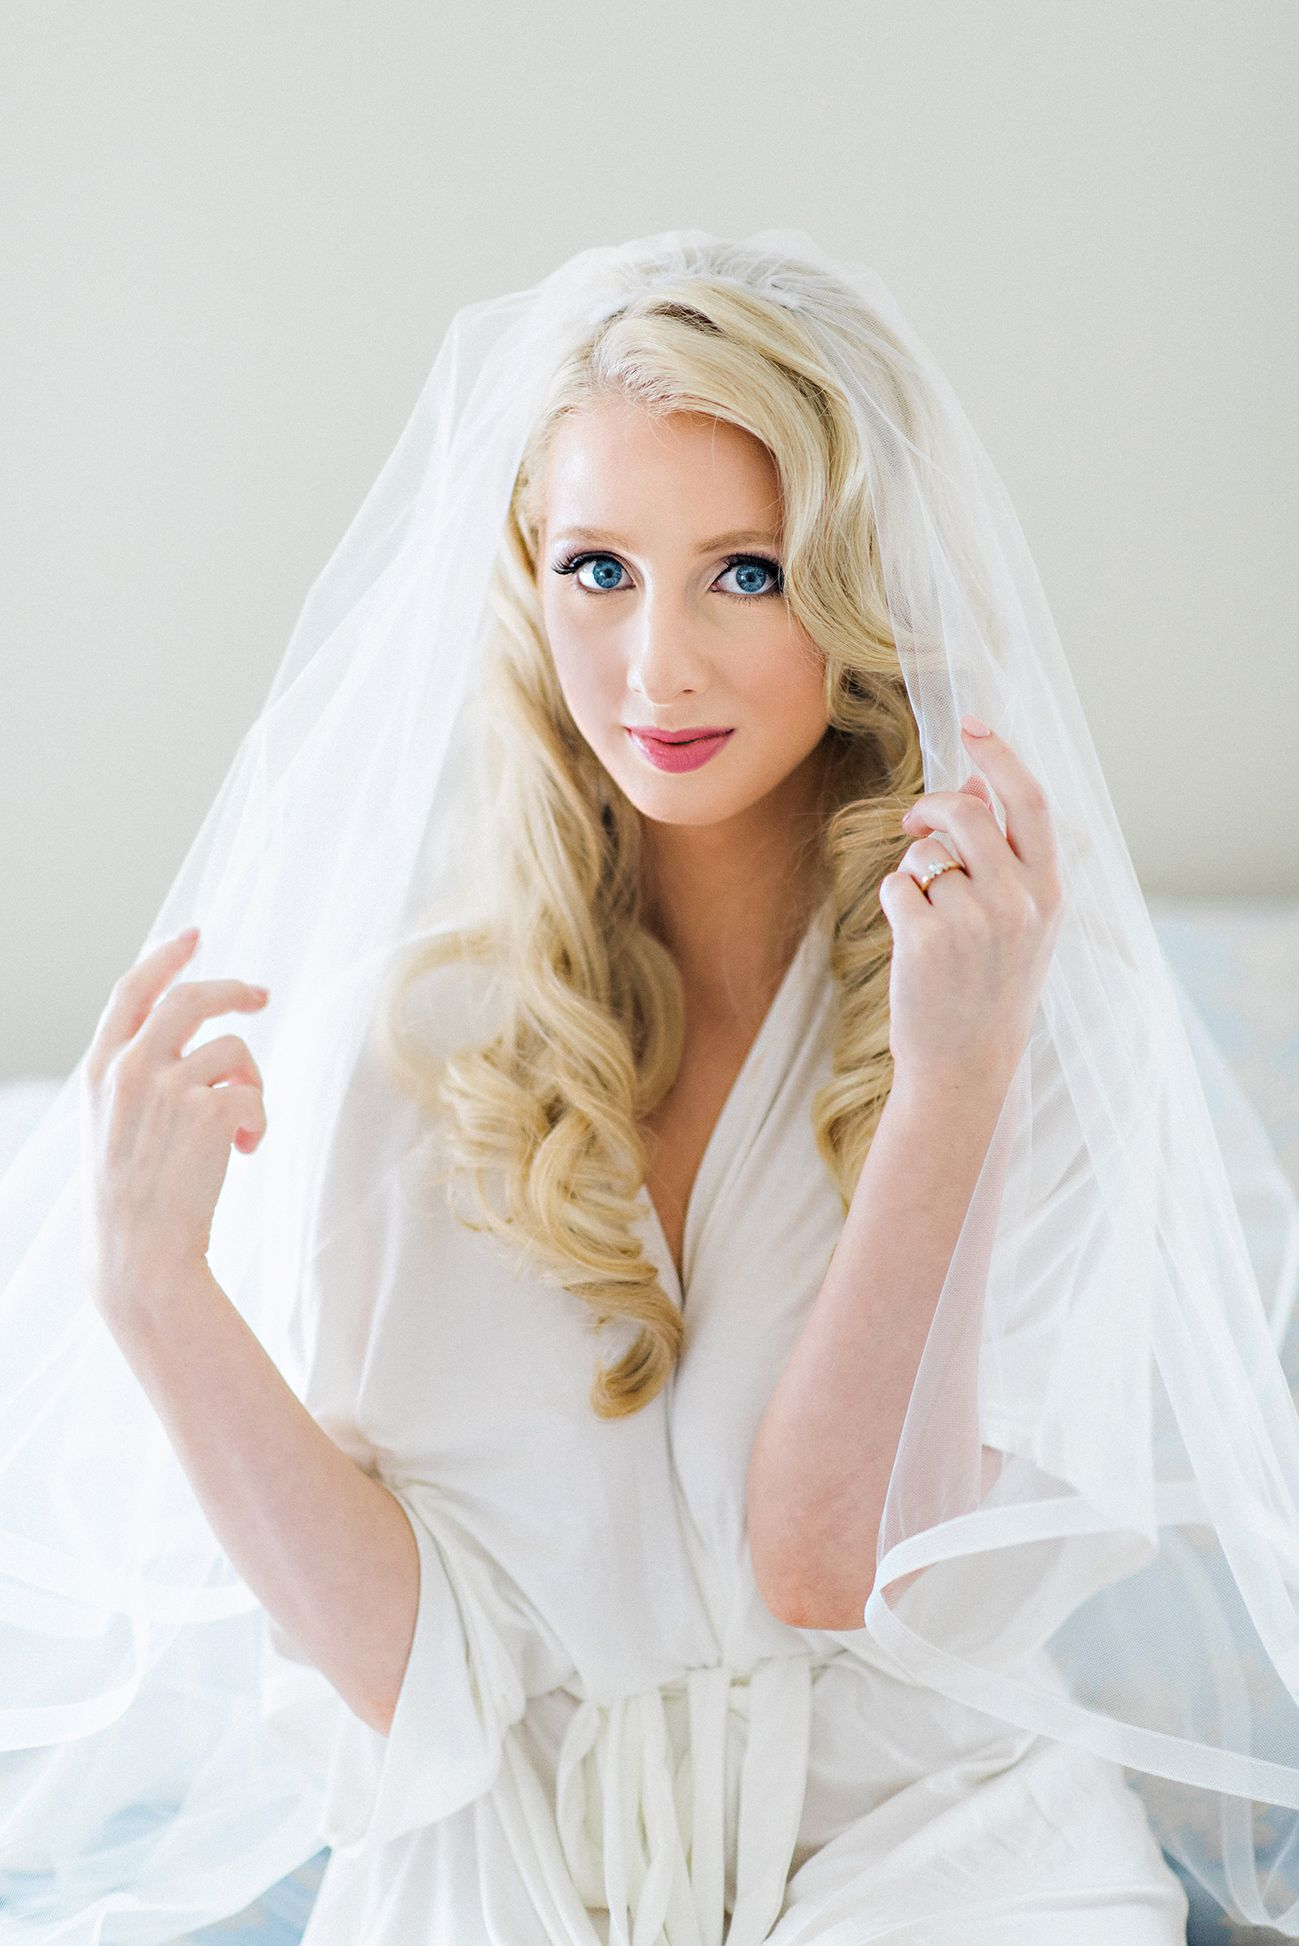 Gorgeous #Bride getting ready for wedding. #beautiful #blonde ...